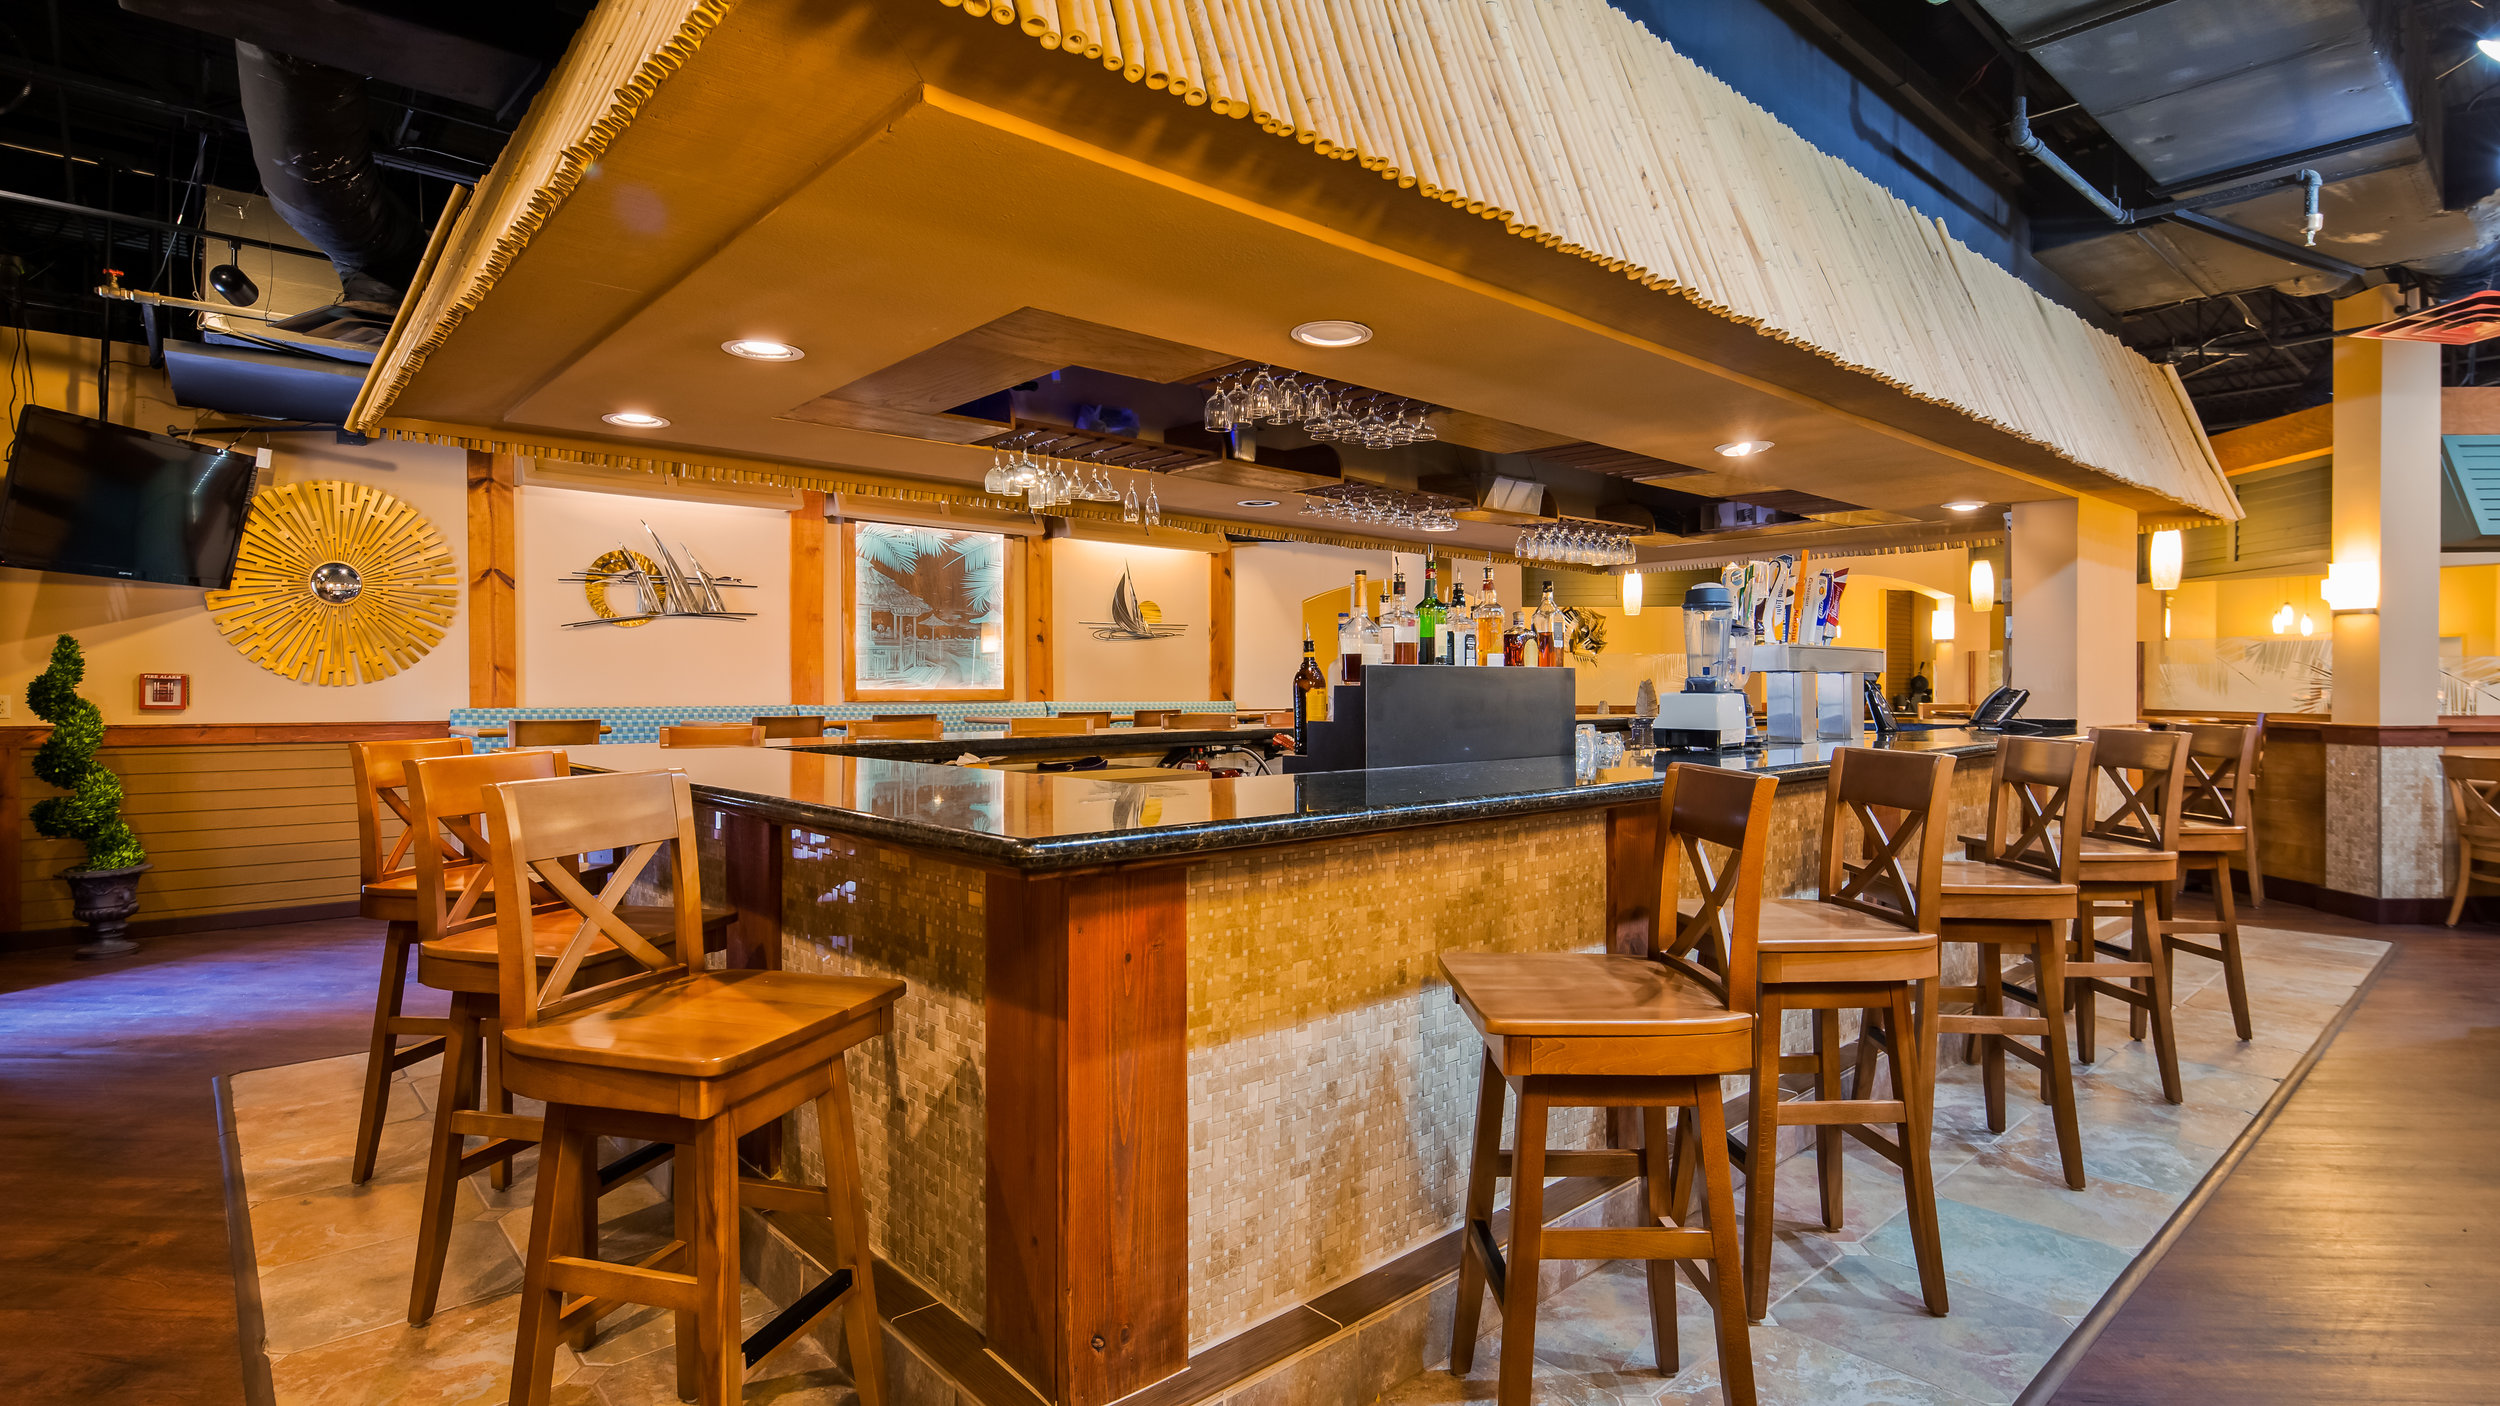 Sharky & Jack's BAr & Grille - Open for Breakfast, Lunch, Happy Hour and Dinner!